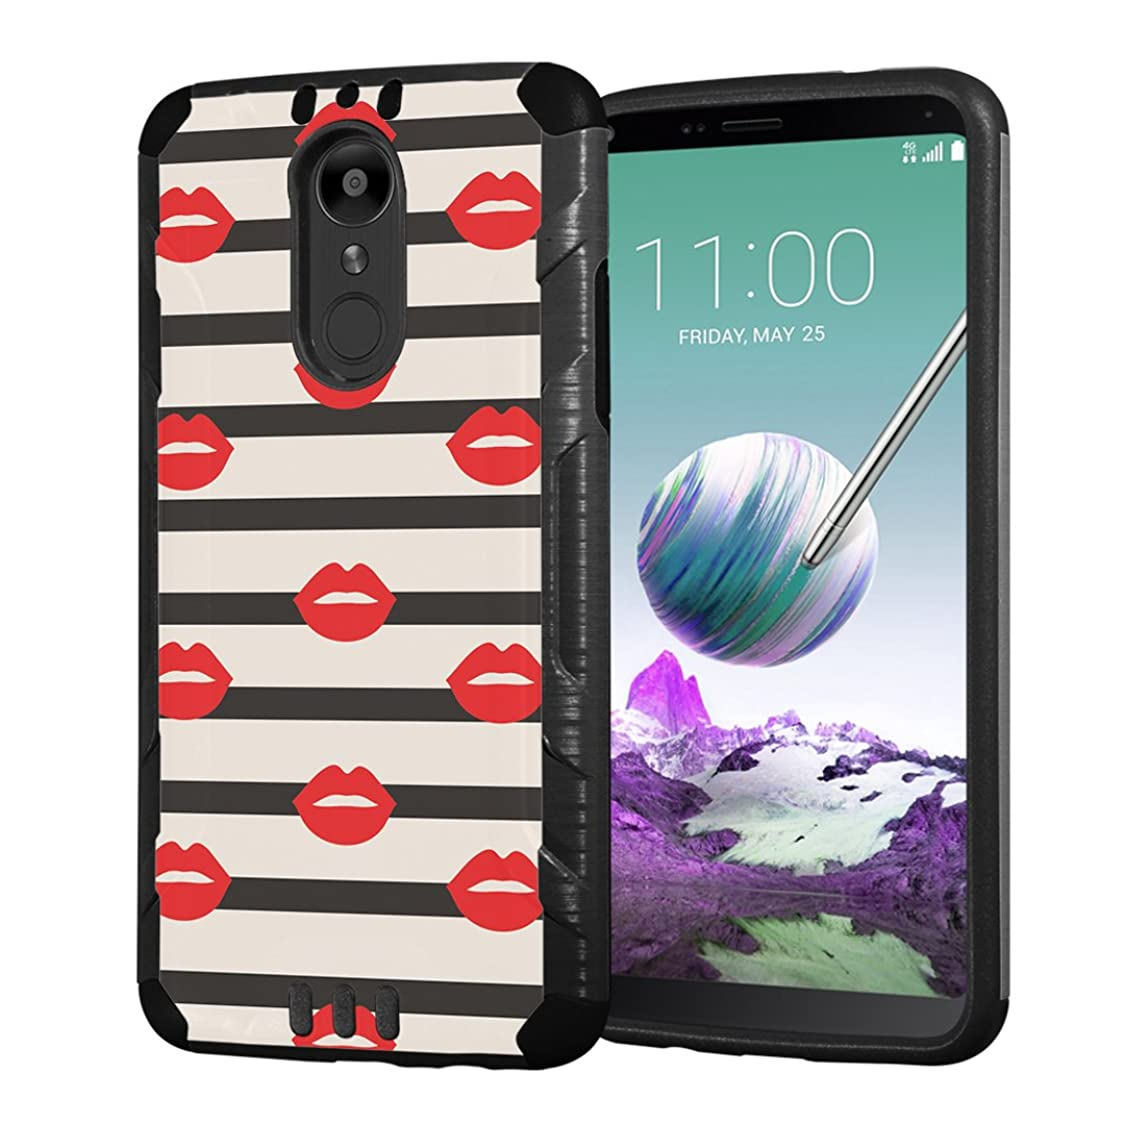 Moriko Case Compatible with LG Stylo 4 Plus, LG Stylo 4, LG Q Stylus [Armor Layer Drop Protection Slim Fashion Shockproof Black Case] for LG Stylo 4 - (Strips Red Lips) hx22050915235377